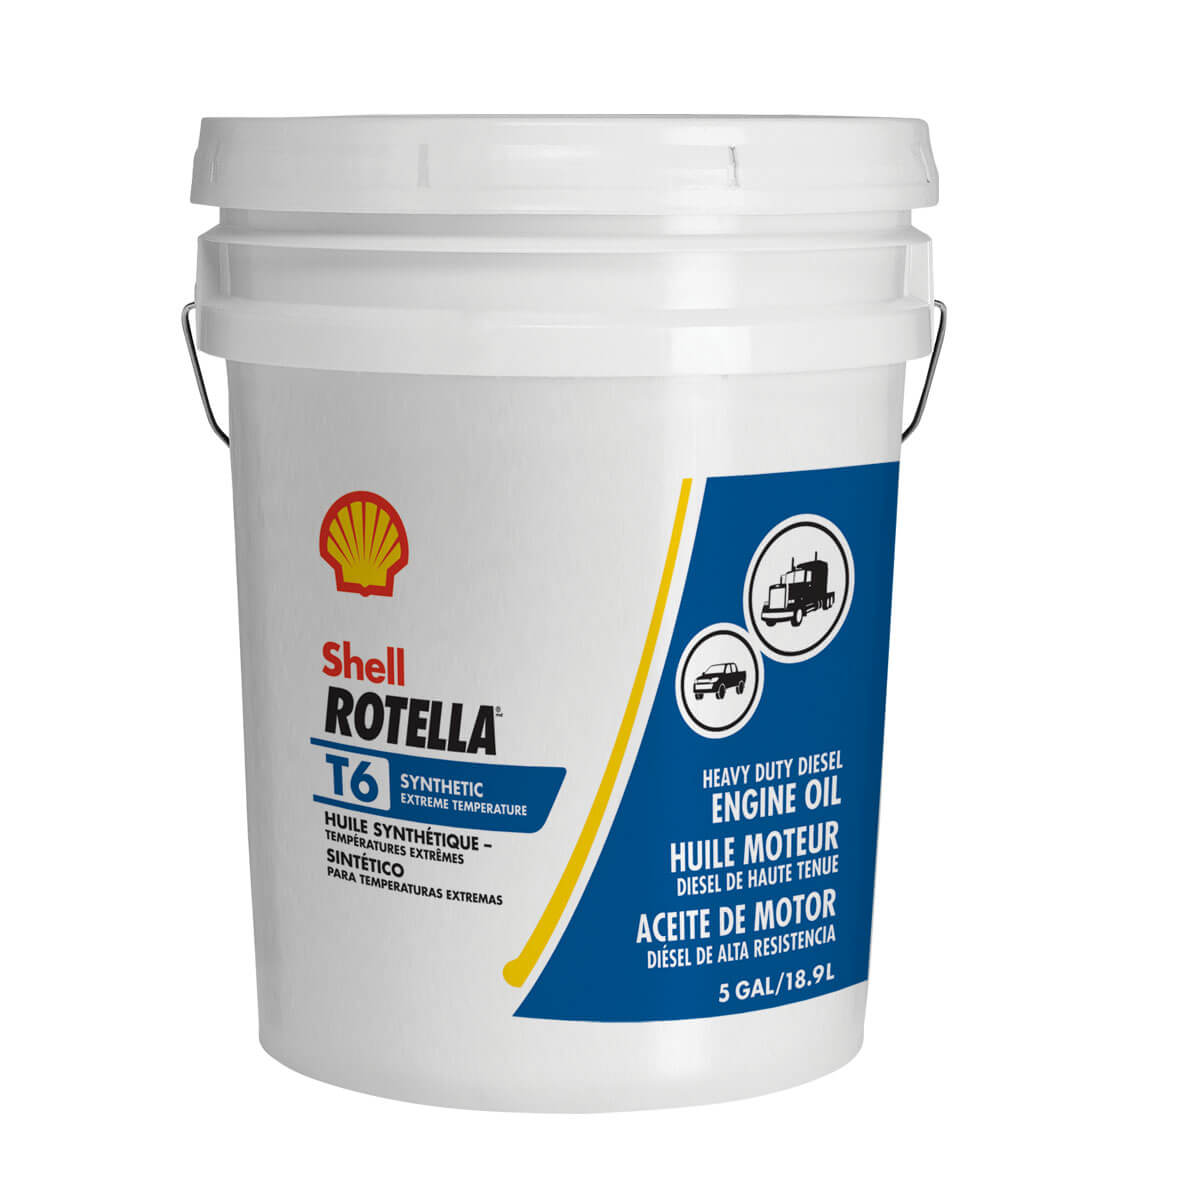 Shell Rotella T6 Triple Protection Synthetic 0W-40 - 18.9L